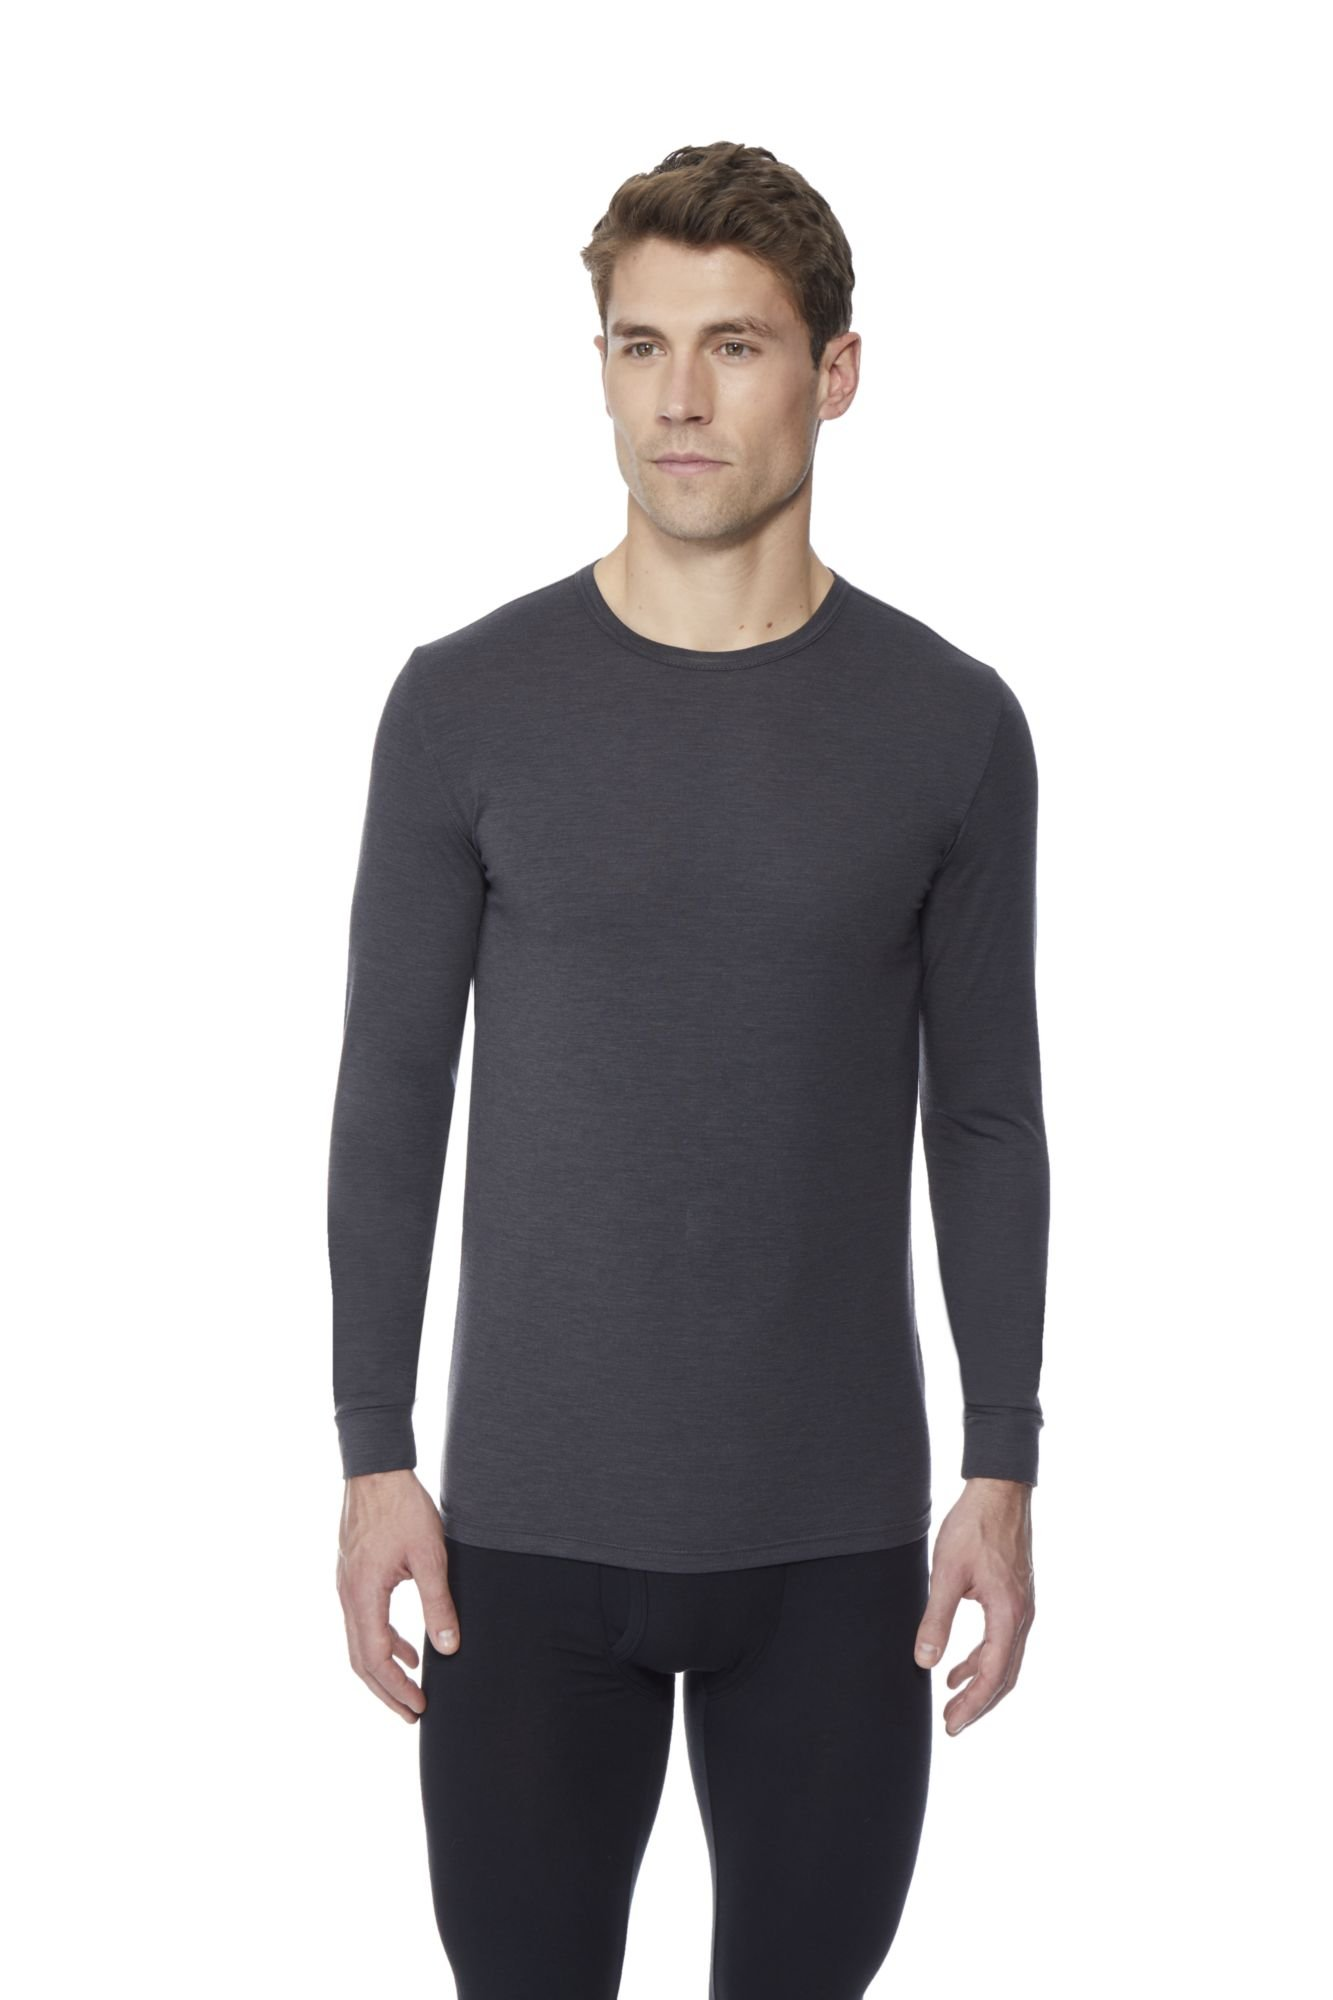 32 DEGREES Men's Heat Performance Mesh Baselayer Tee- Ht Black -L by 32 DEGREES